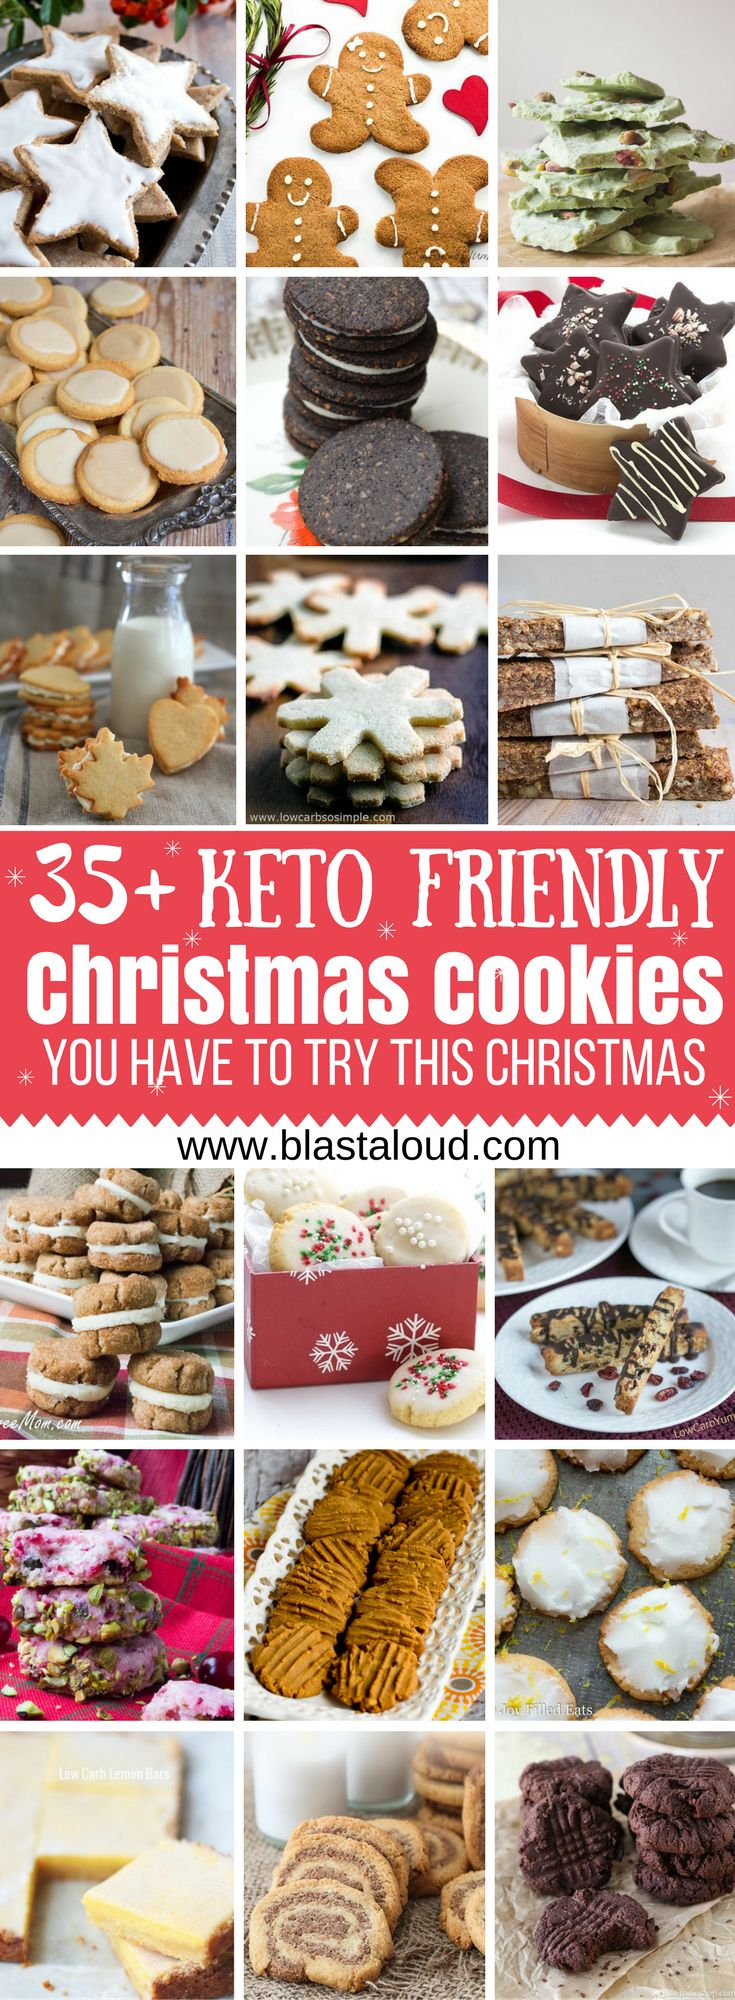 Wow these Keto Christmas Cookies are amazing! You should definitely try these if you're trying to stick to a diet or trying to eat healthy this festive season! #christmas #christmascookies #keto #ketodiet #ketocookies #ketodessert